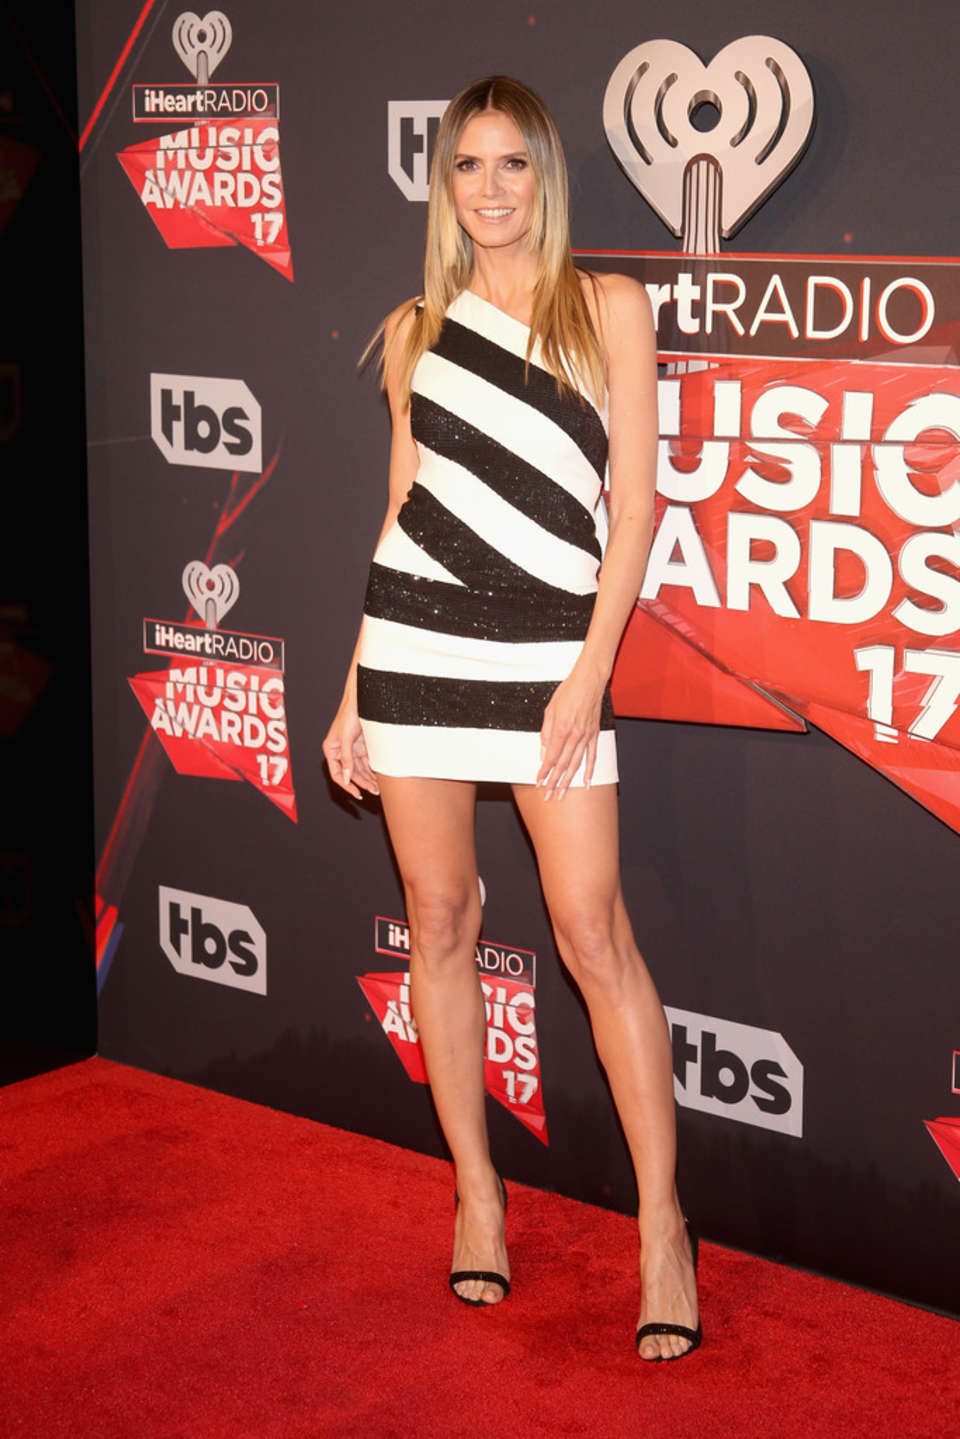 Heidi Klum bares toned legs at the 2017 iHeartRadio Music Awards in LA